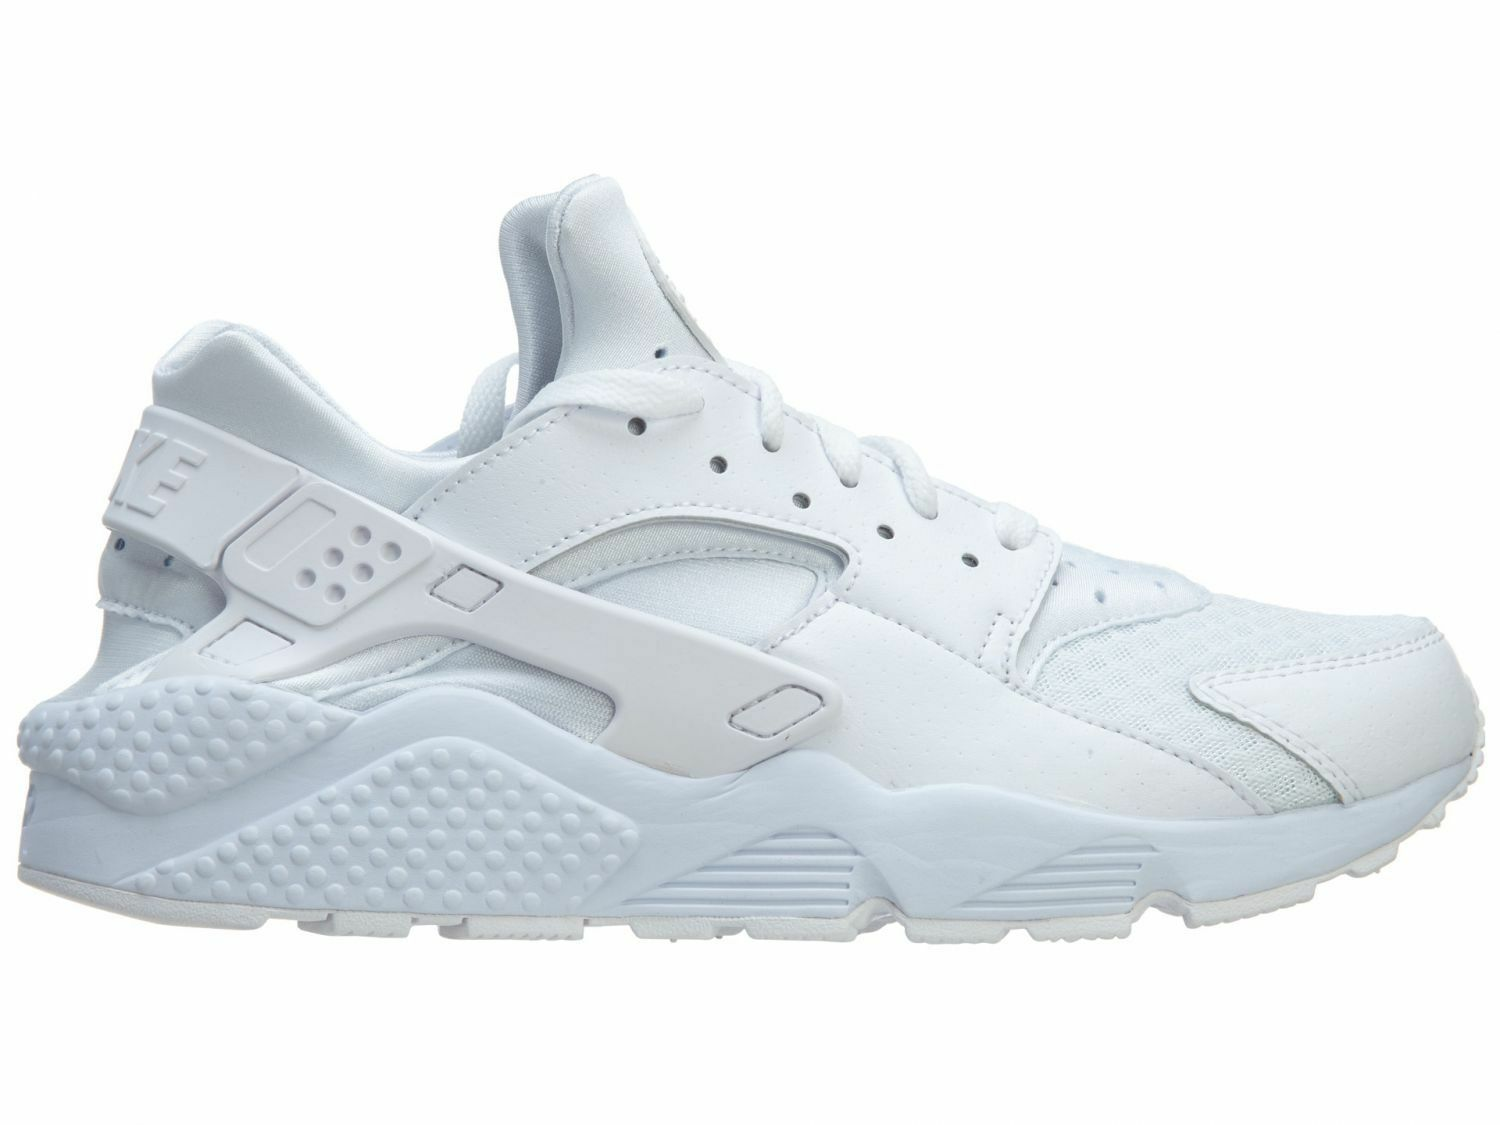 promo code 72dd1 f2895 Nike Air Huarache Mens 318429-111 White Pure Platinum Running shoes Size 8.5